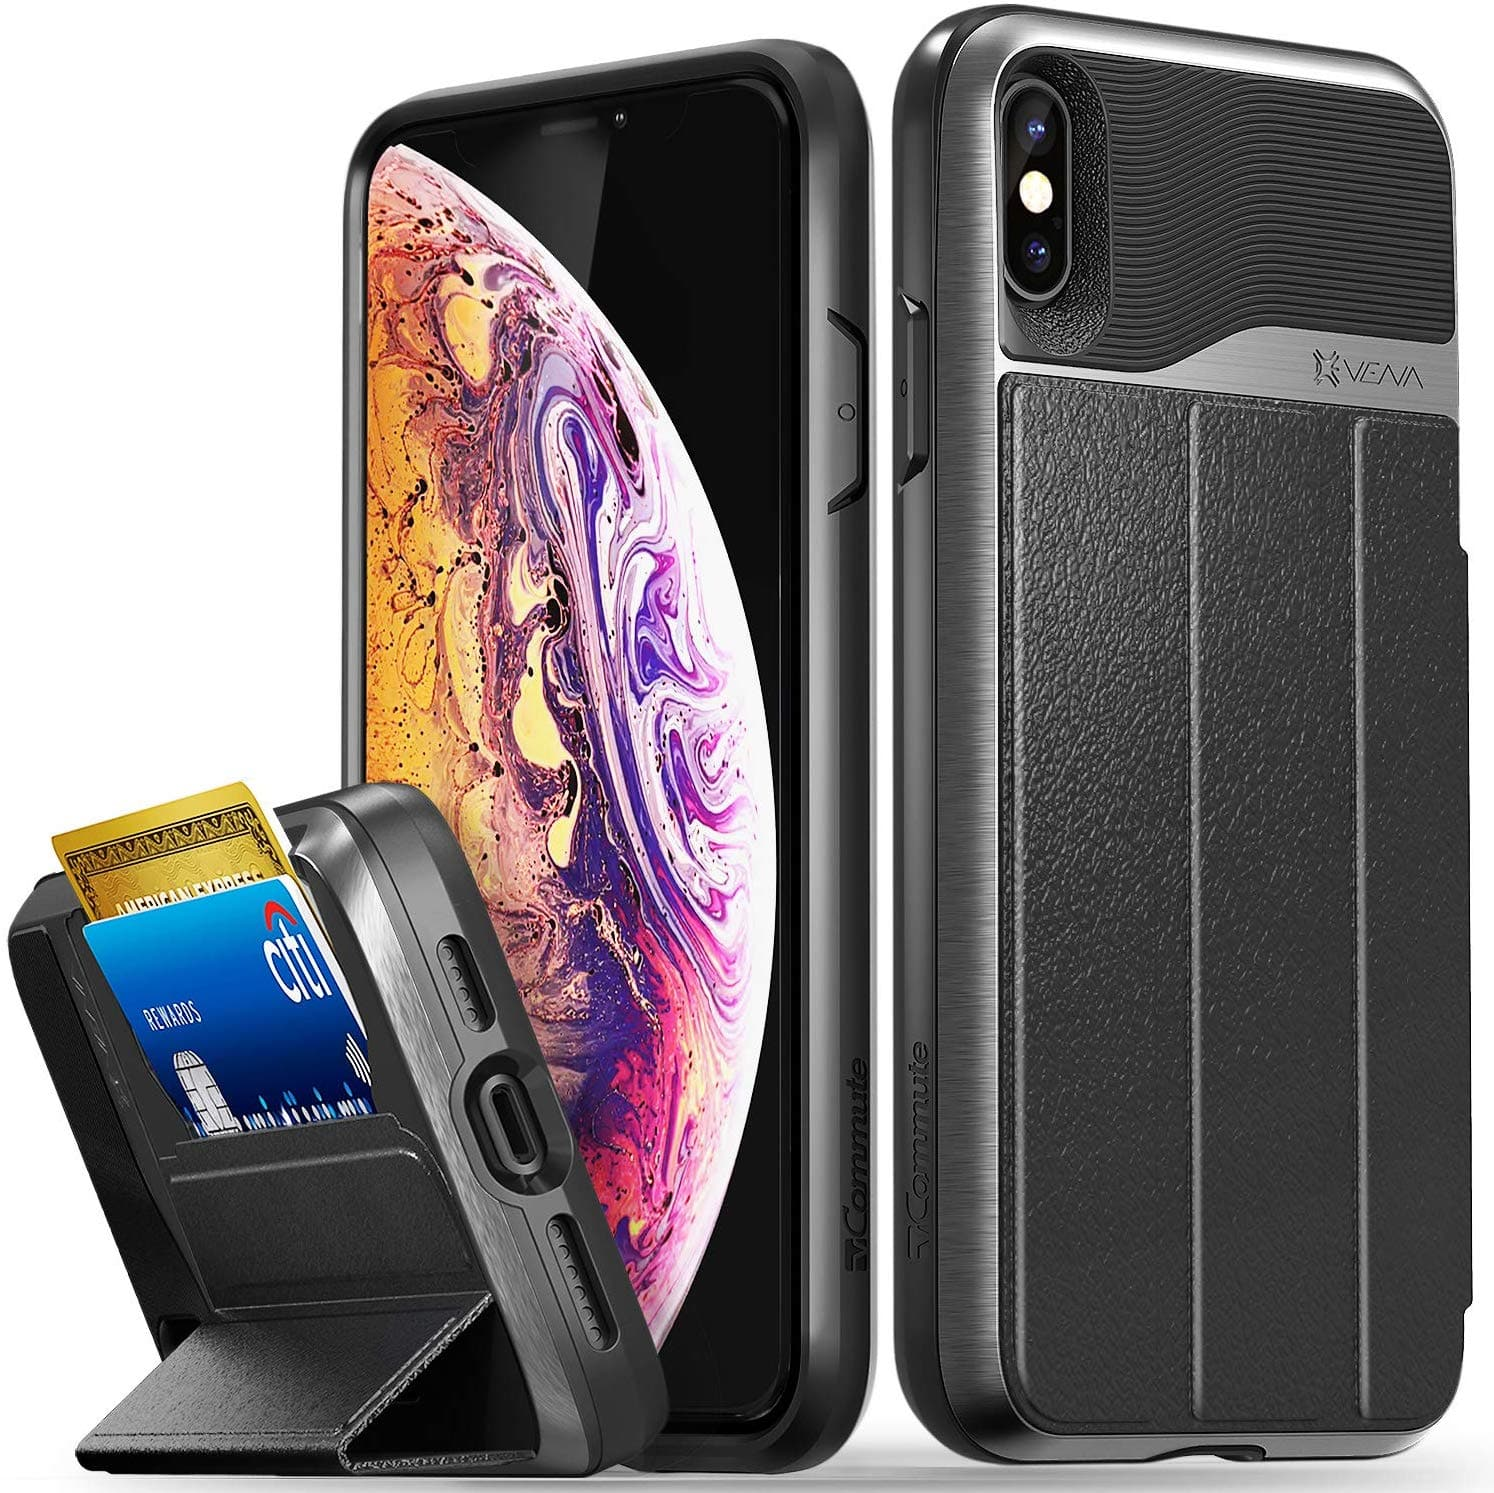 Vena iPhone 11, 11 Pro, 11 Pro Max, XR, Xs Max, Xs/X Phone Cases Starting at $2.04 + FS